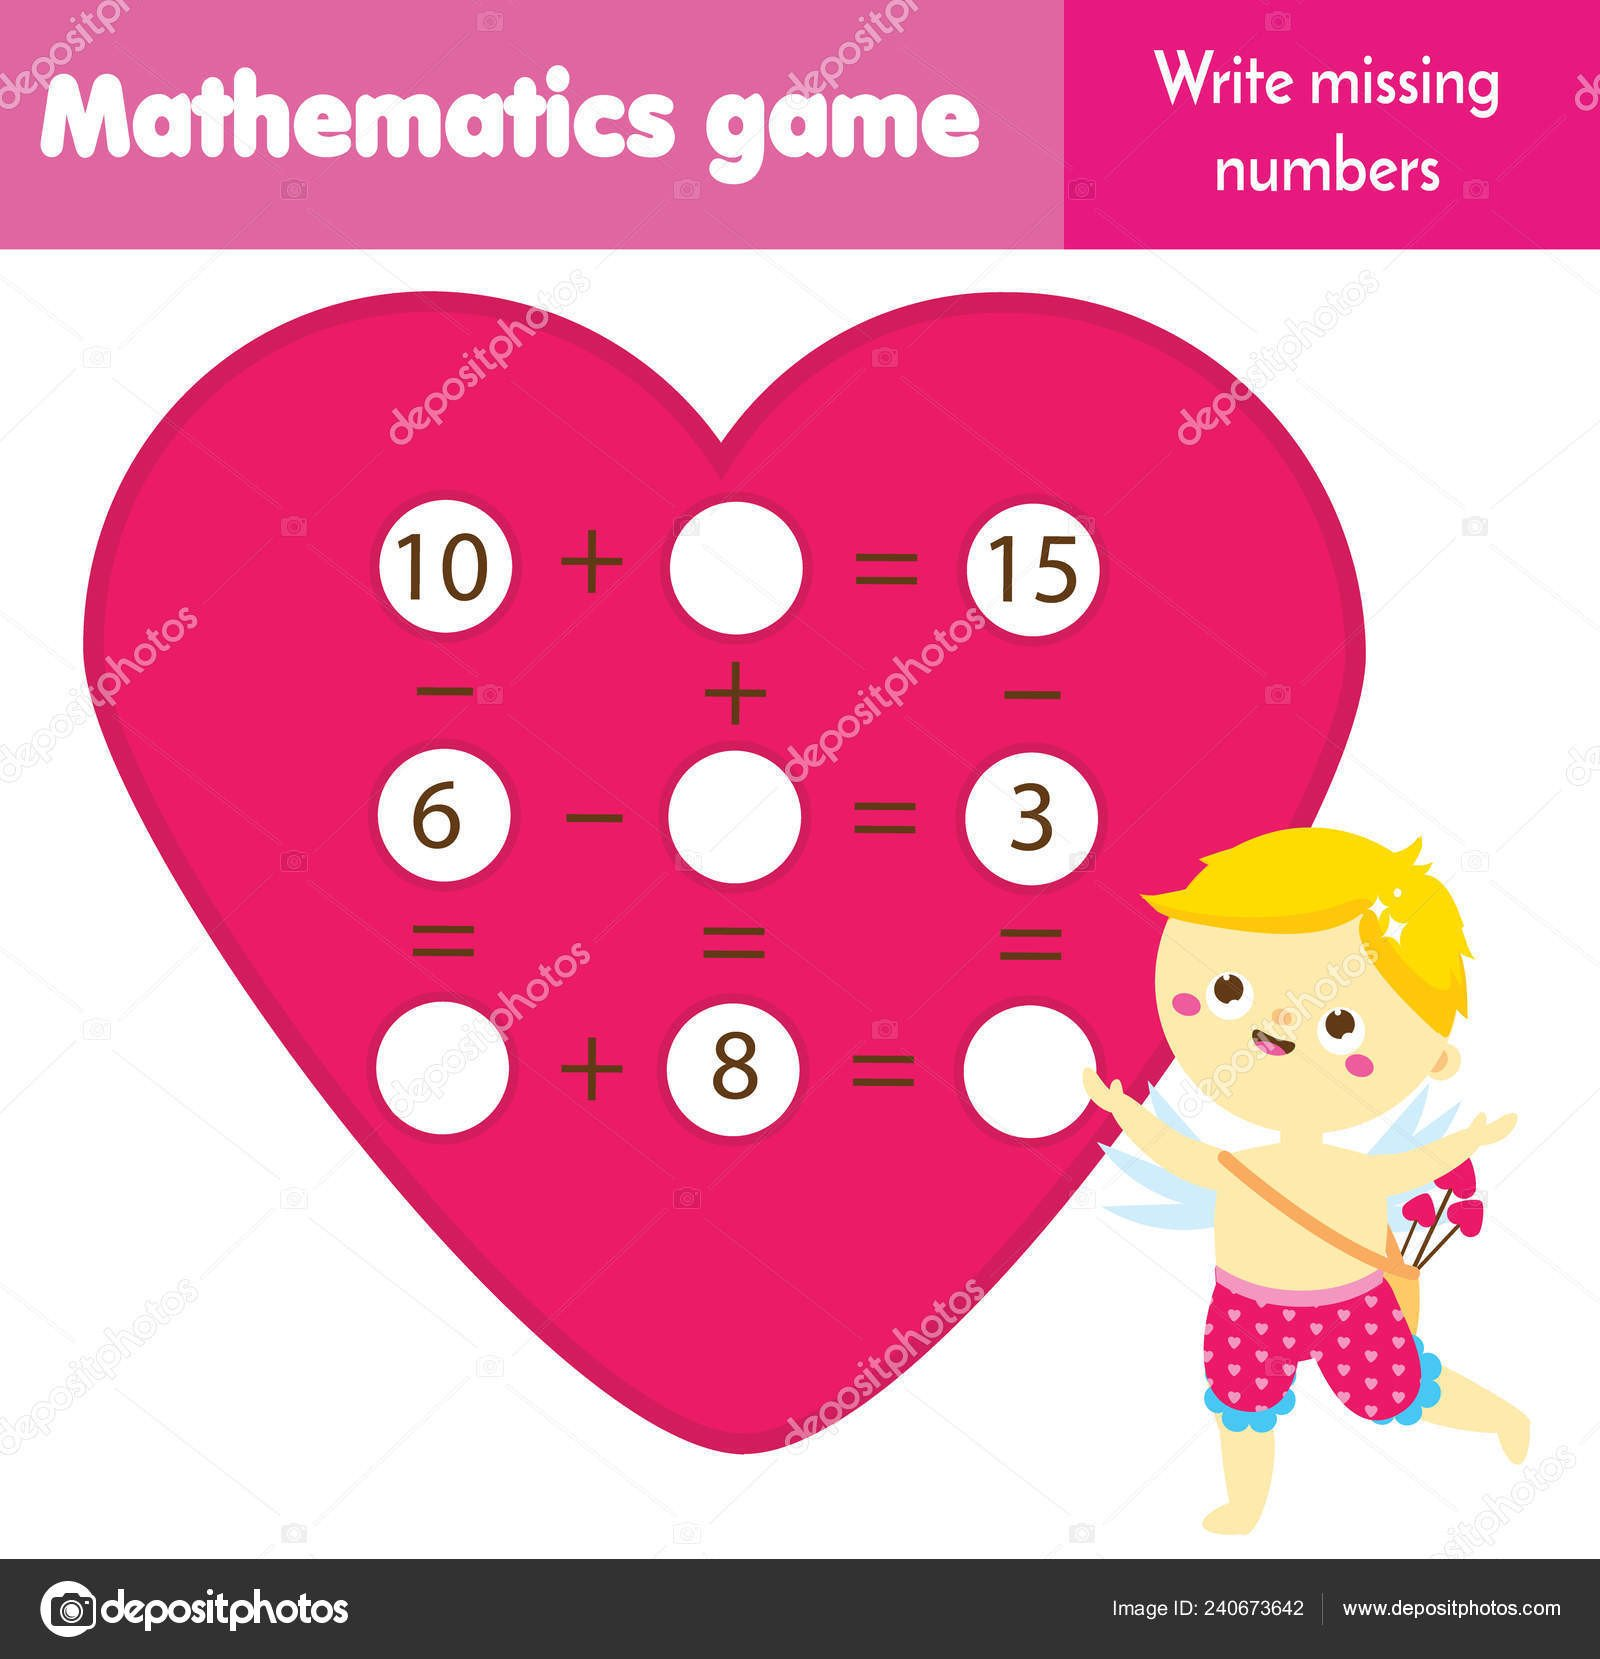 Missing Numbers In Equations Worksheets Math Educational Game for Children Write Missing Numbers and Plete Equations Study Subtraction and Addition St Valentines Day theme Mathematics